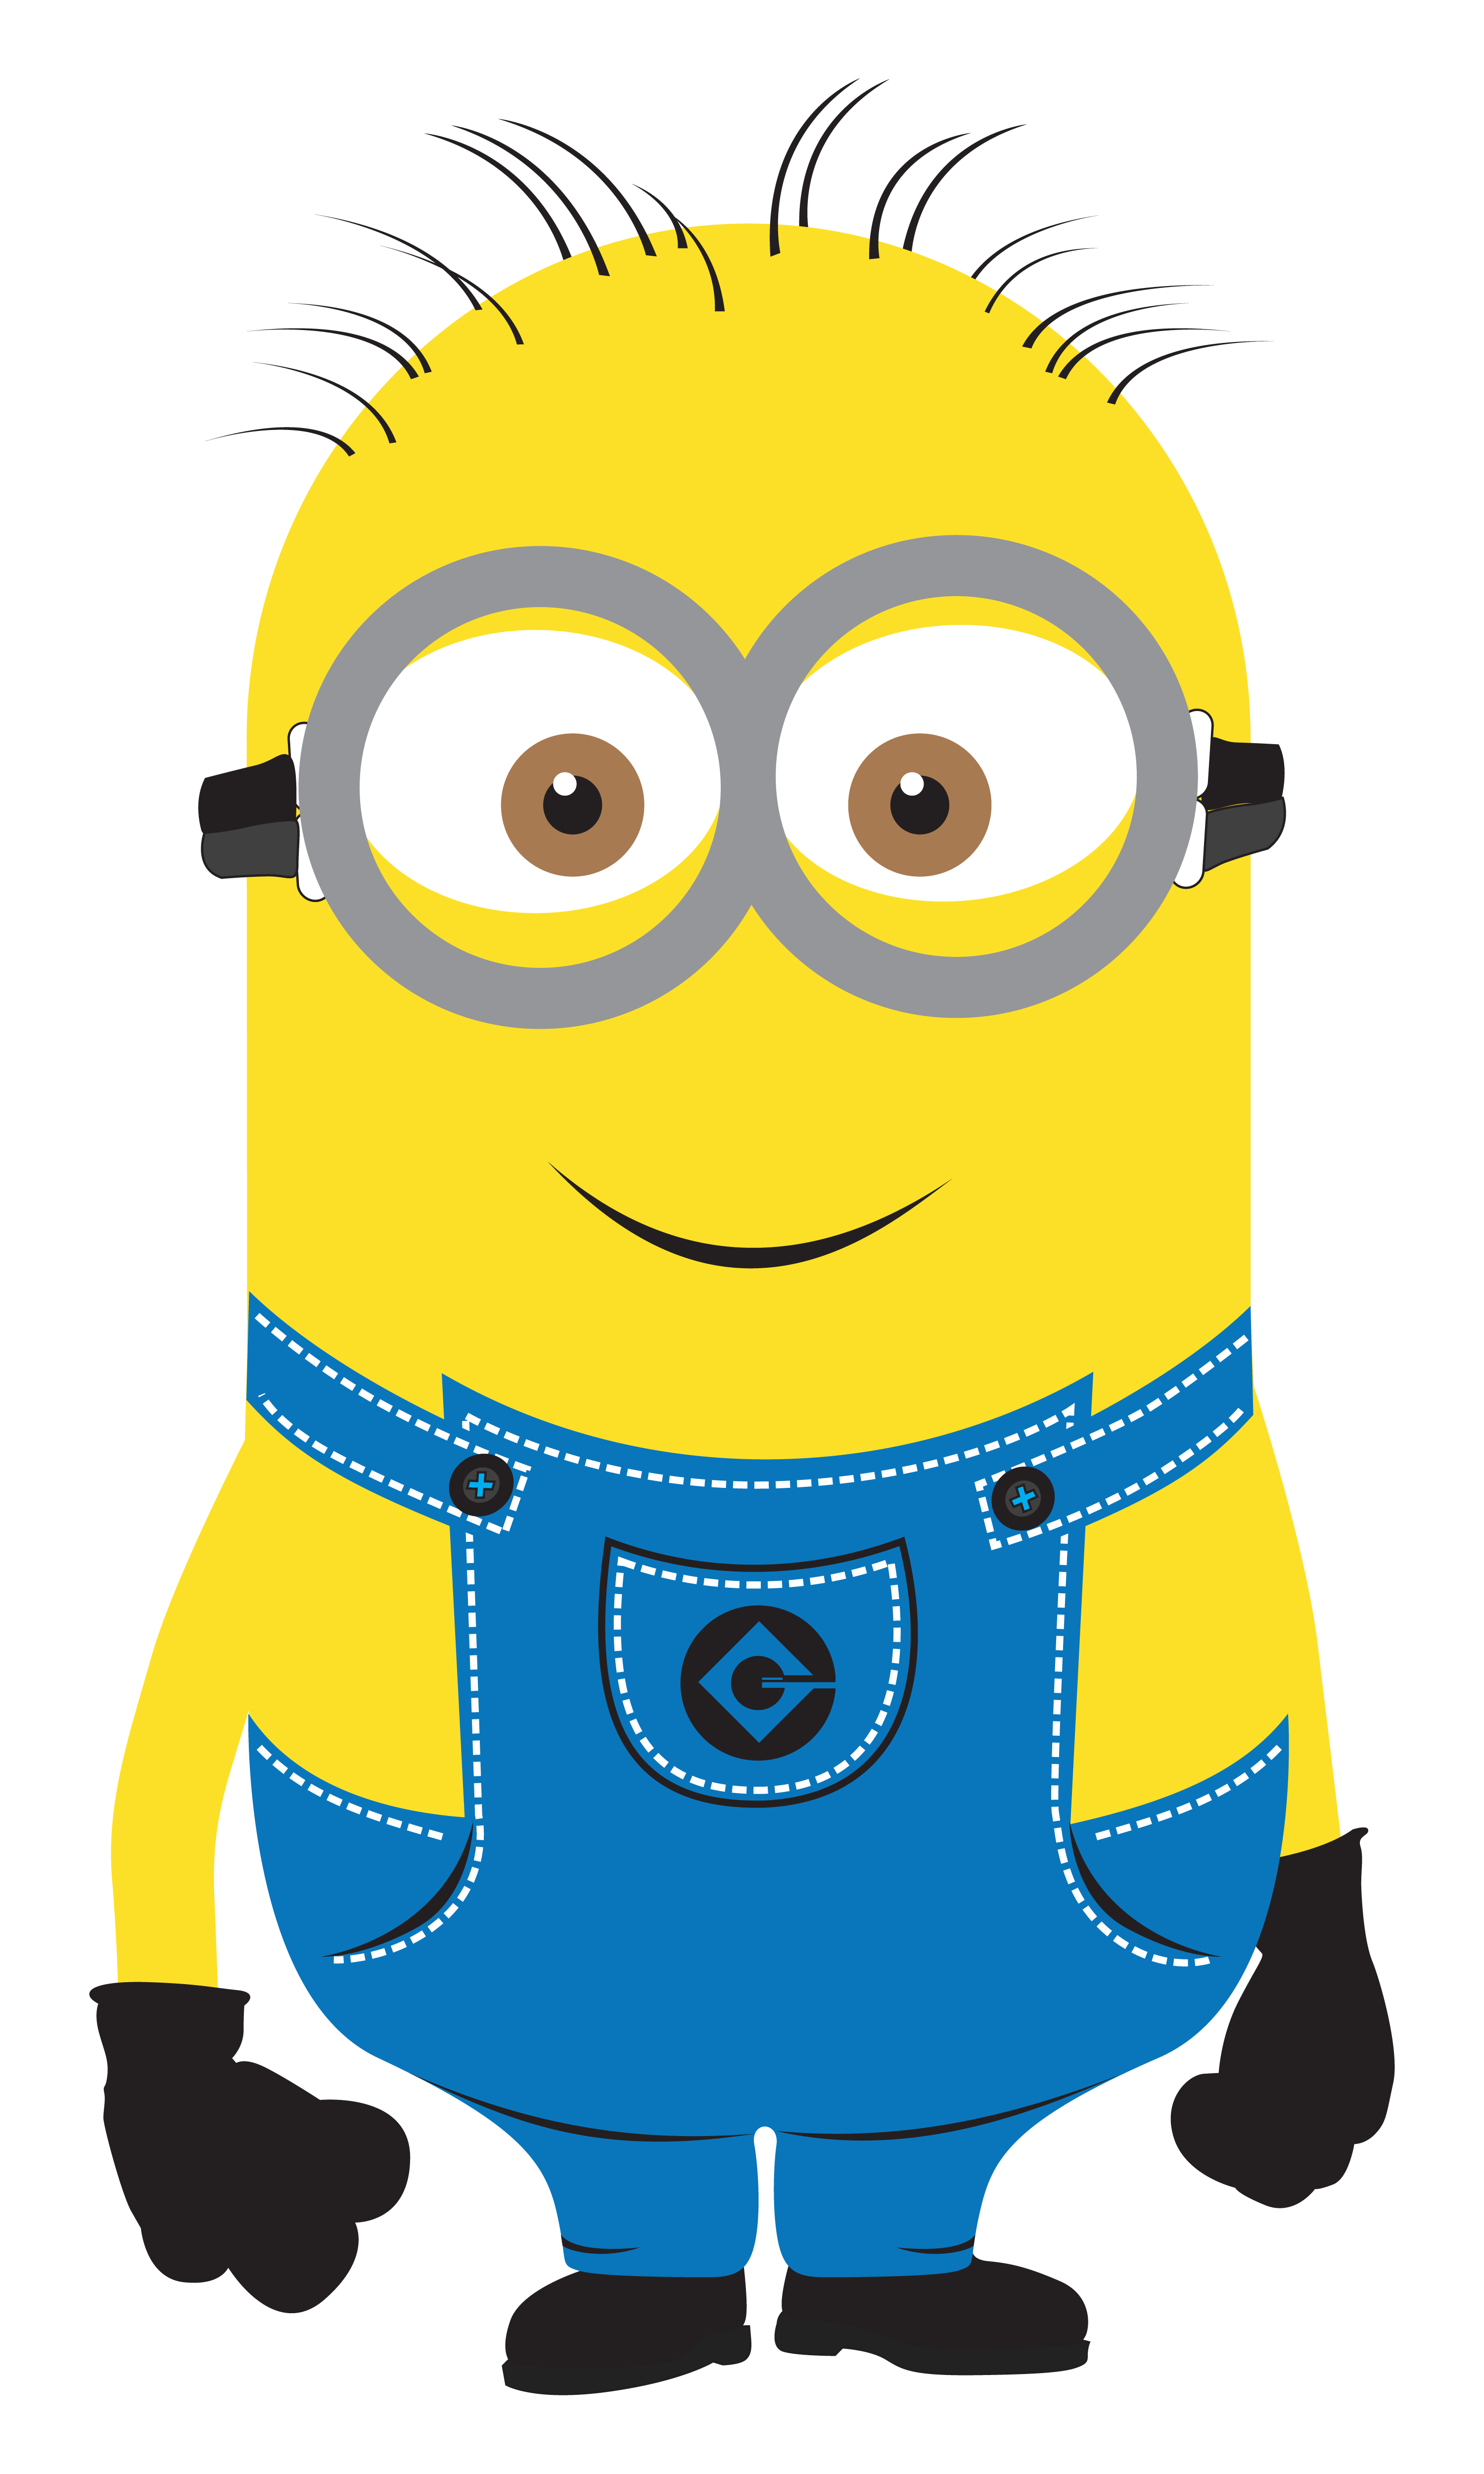 Despicable me minions clipart best for Minion clothespins